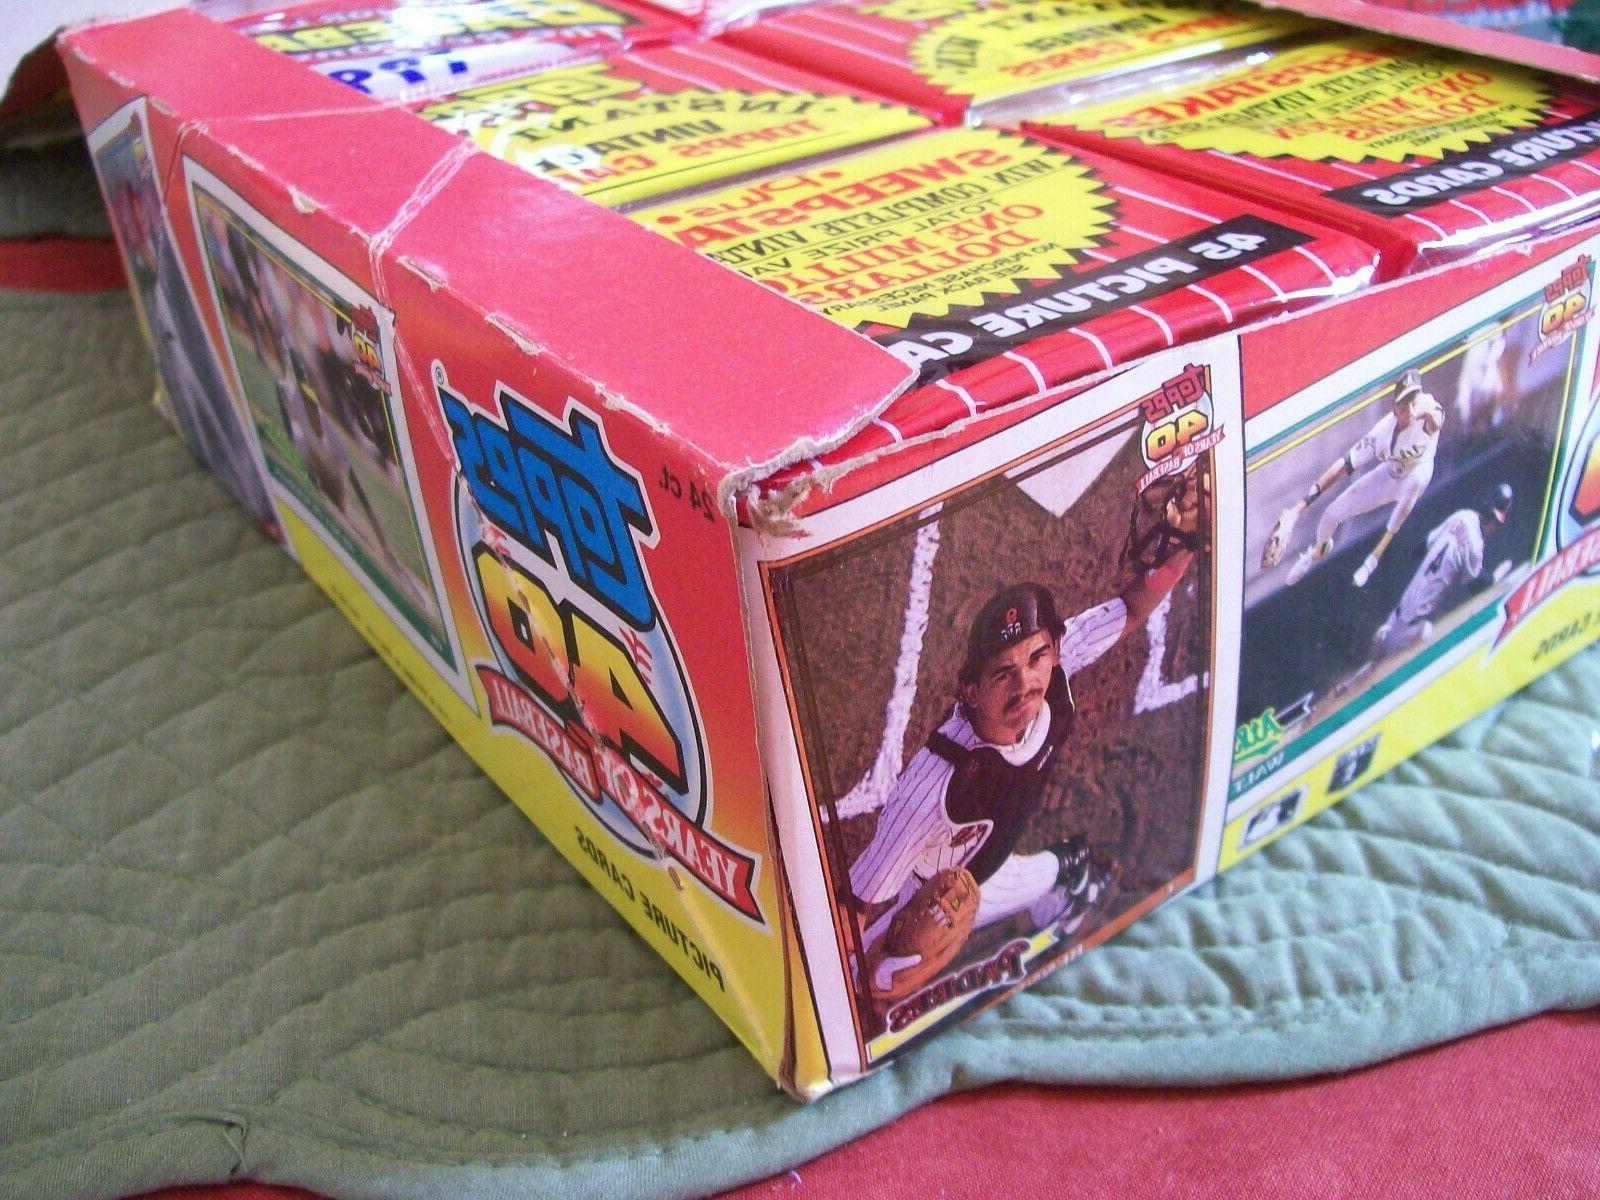 1991 Topps Basball Rack Pack - Count